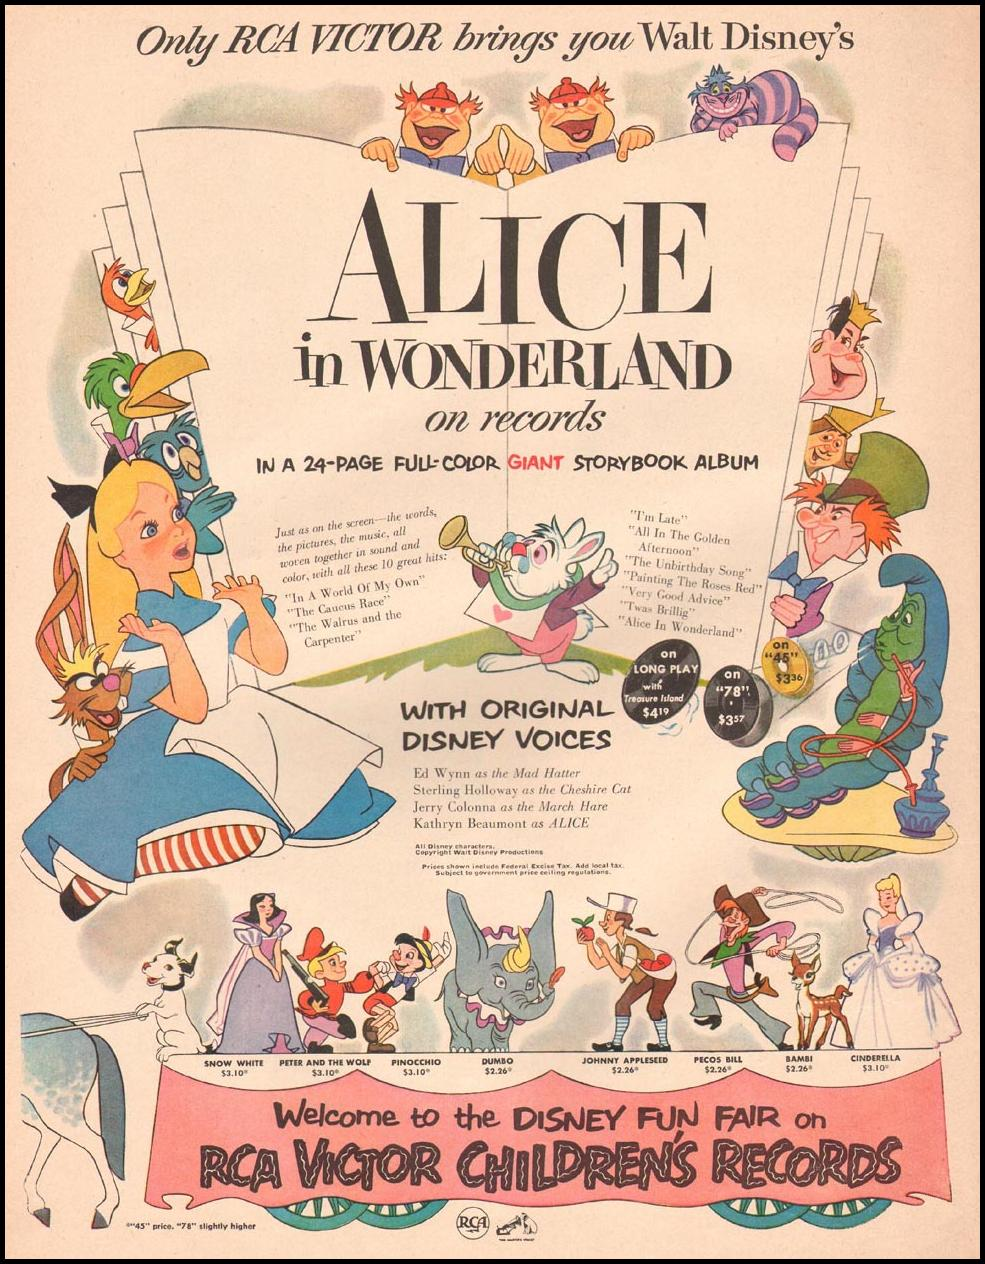 ALICE IN WONDERLAND LIFE 09/03/1951 p. 94